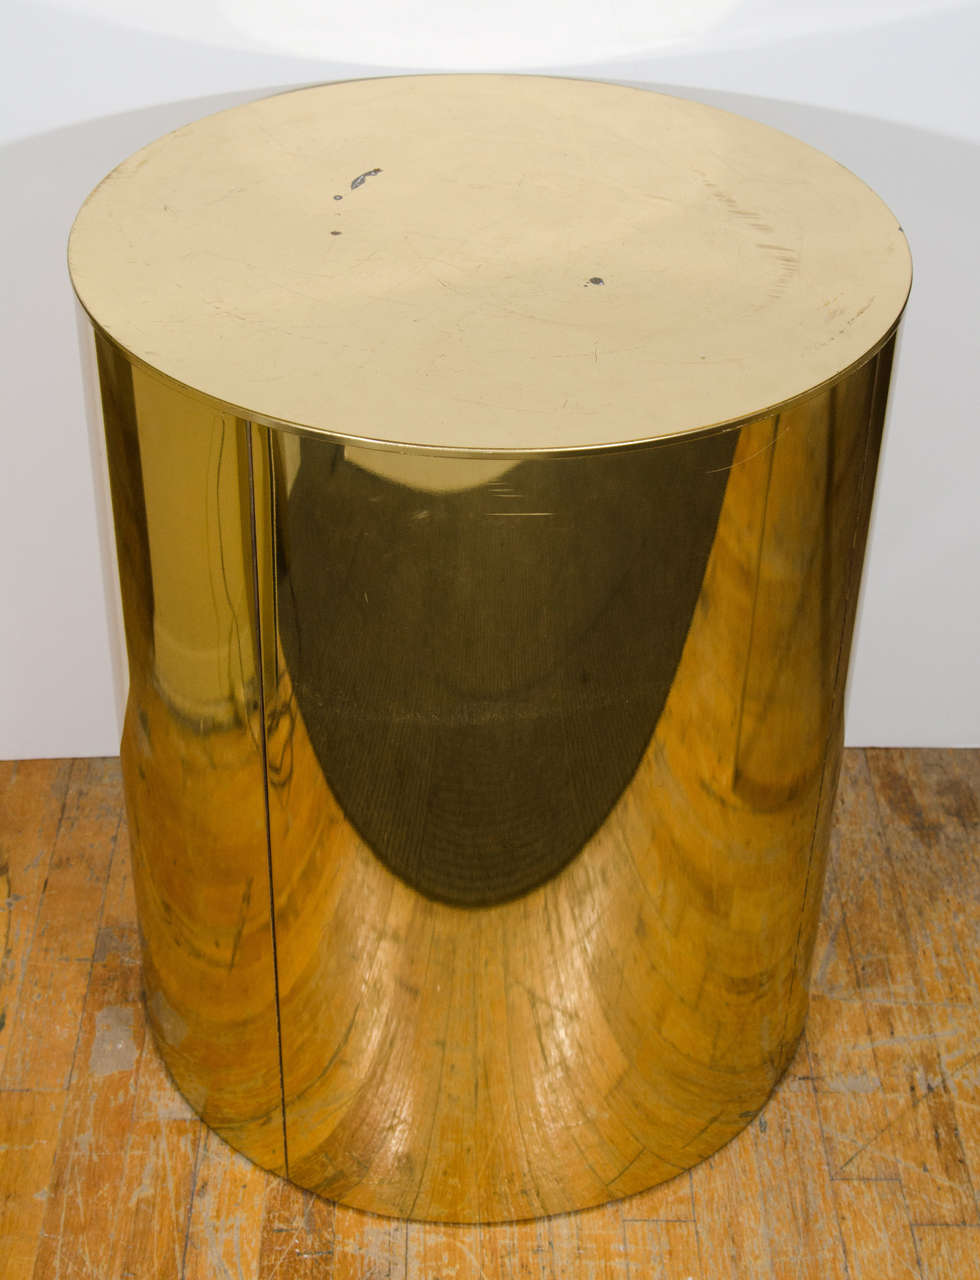 Merveilleux A Vintage Cylindrical Brass Drum Table Signed C. Jeré. Can Be Used As A